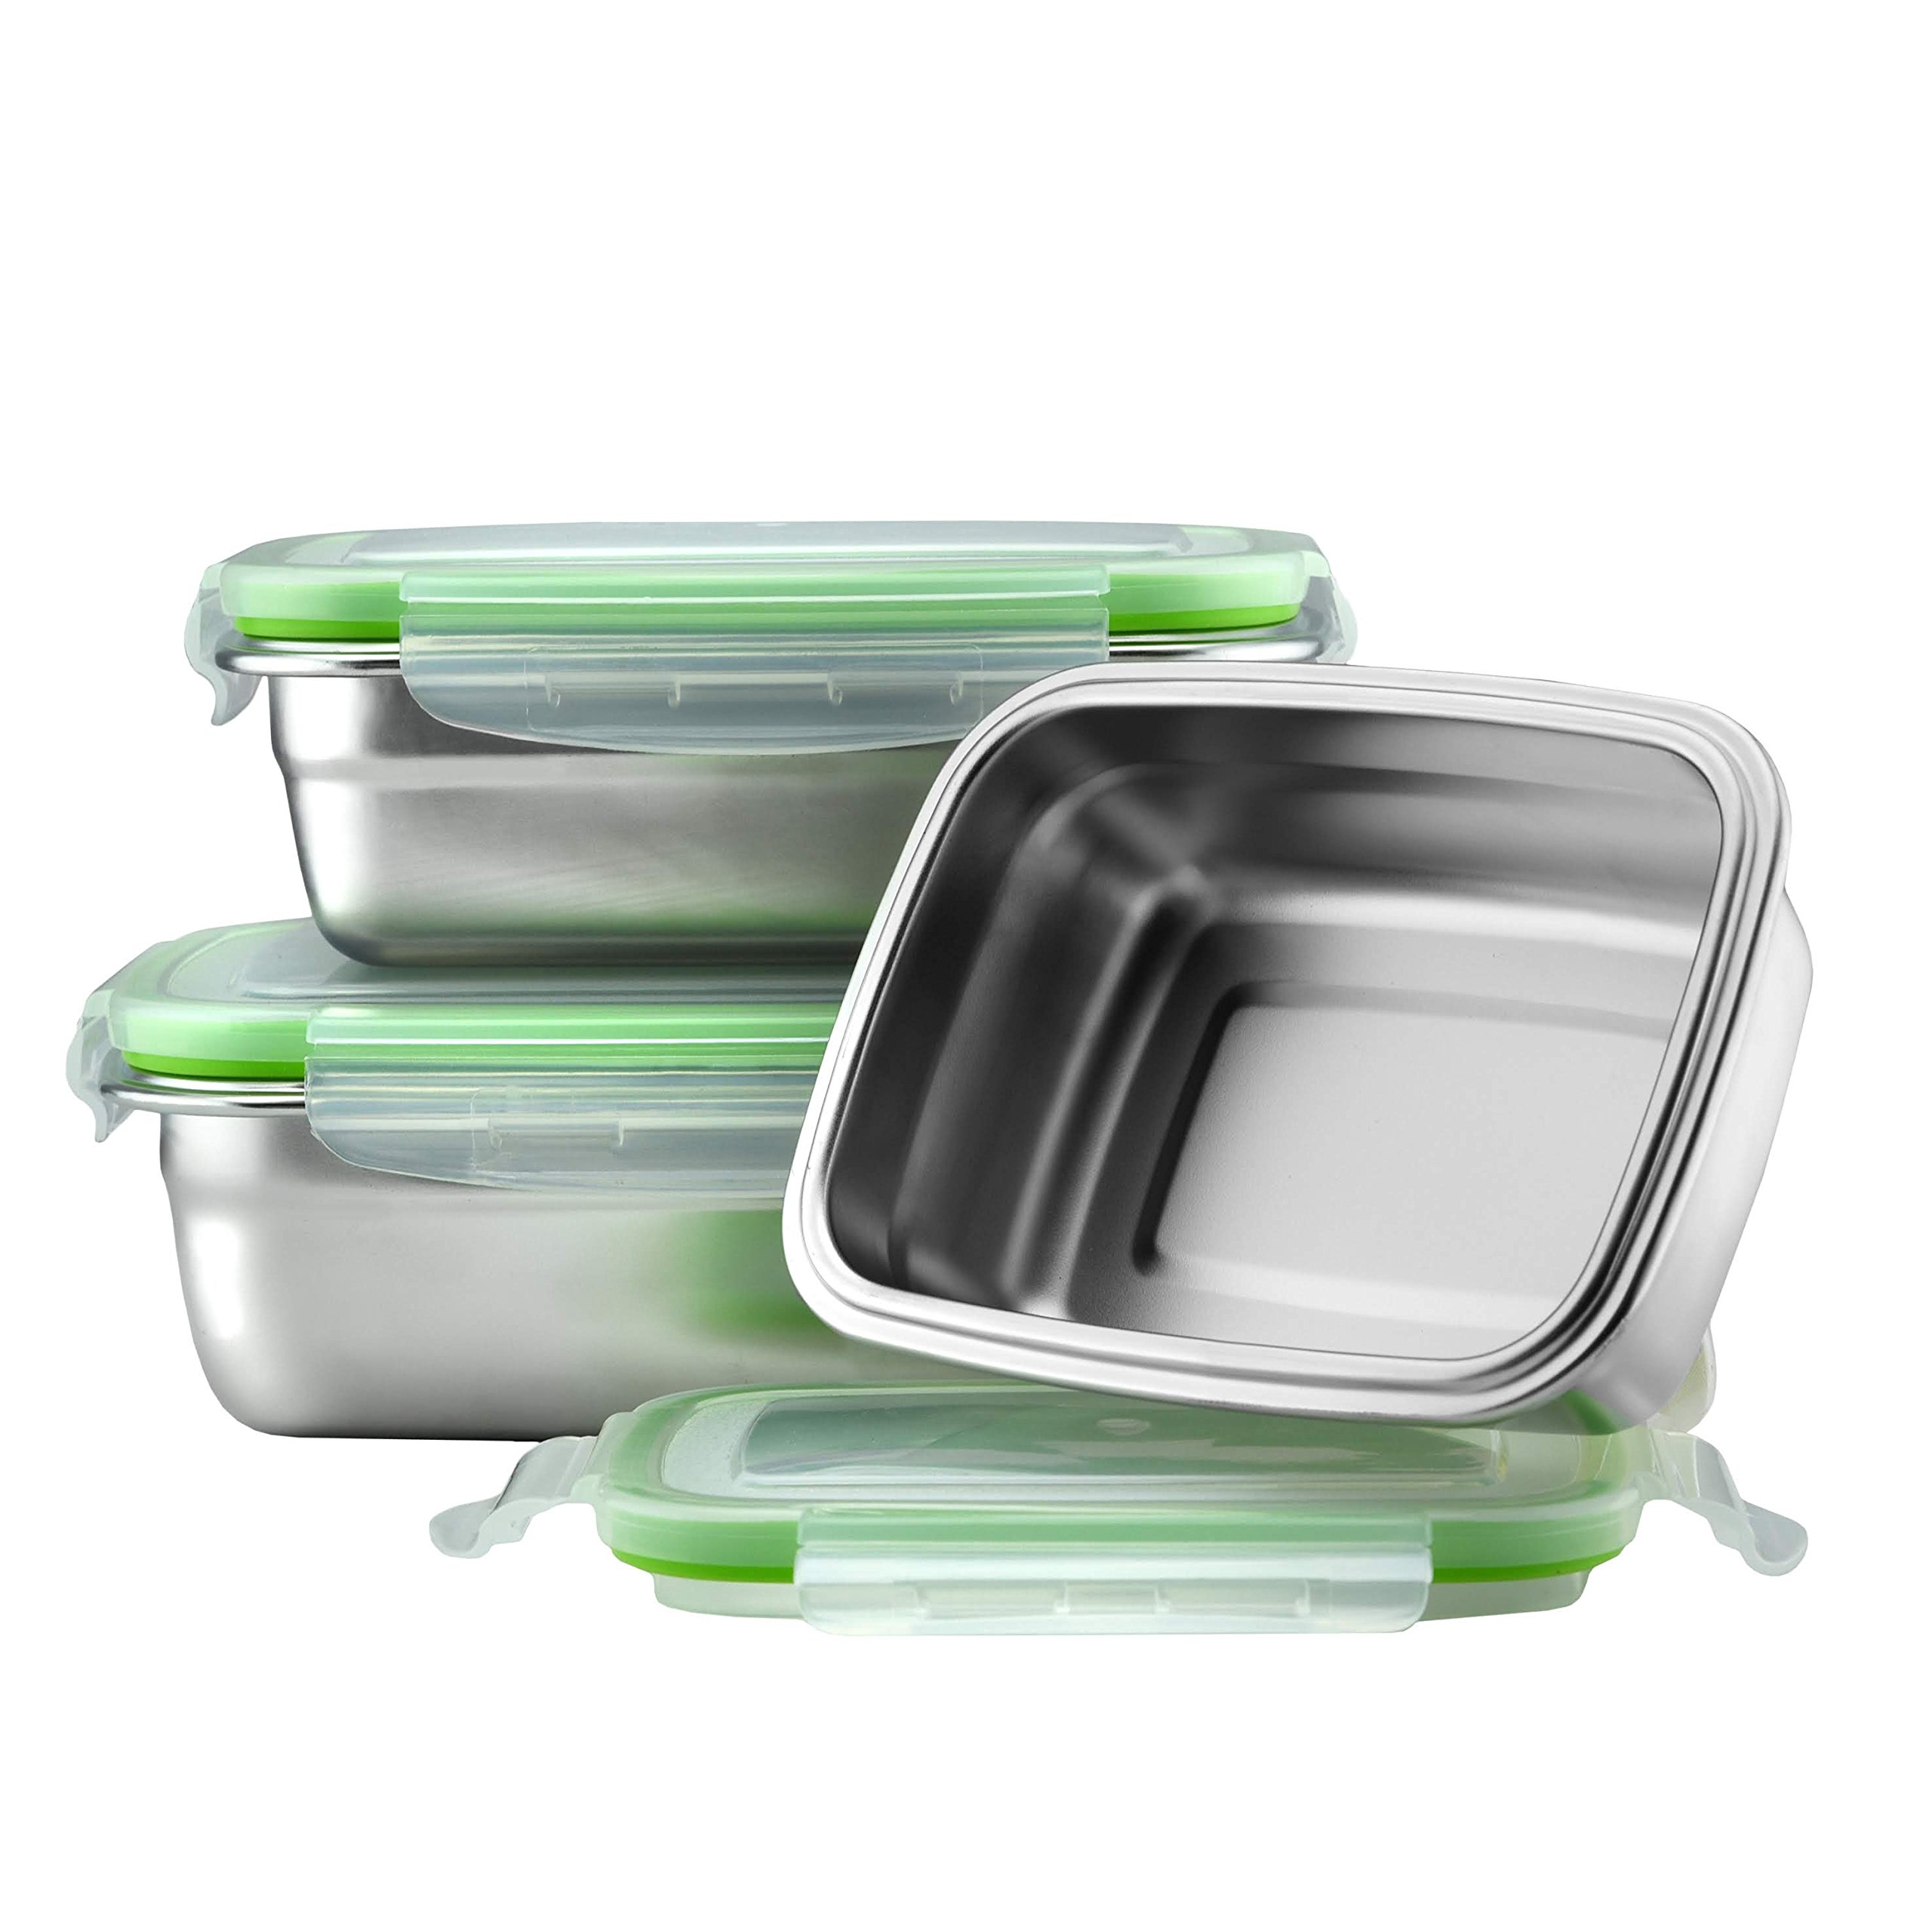 Klee Utensils Stainless Steel Food Containers - Perfect Lunch/Food Storage Box High Durability, Reusable, Eco-Friendly, BPA-Free & Easy to Use, Great for Outdoor/On the Go Healthy Snack/Side Meals